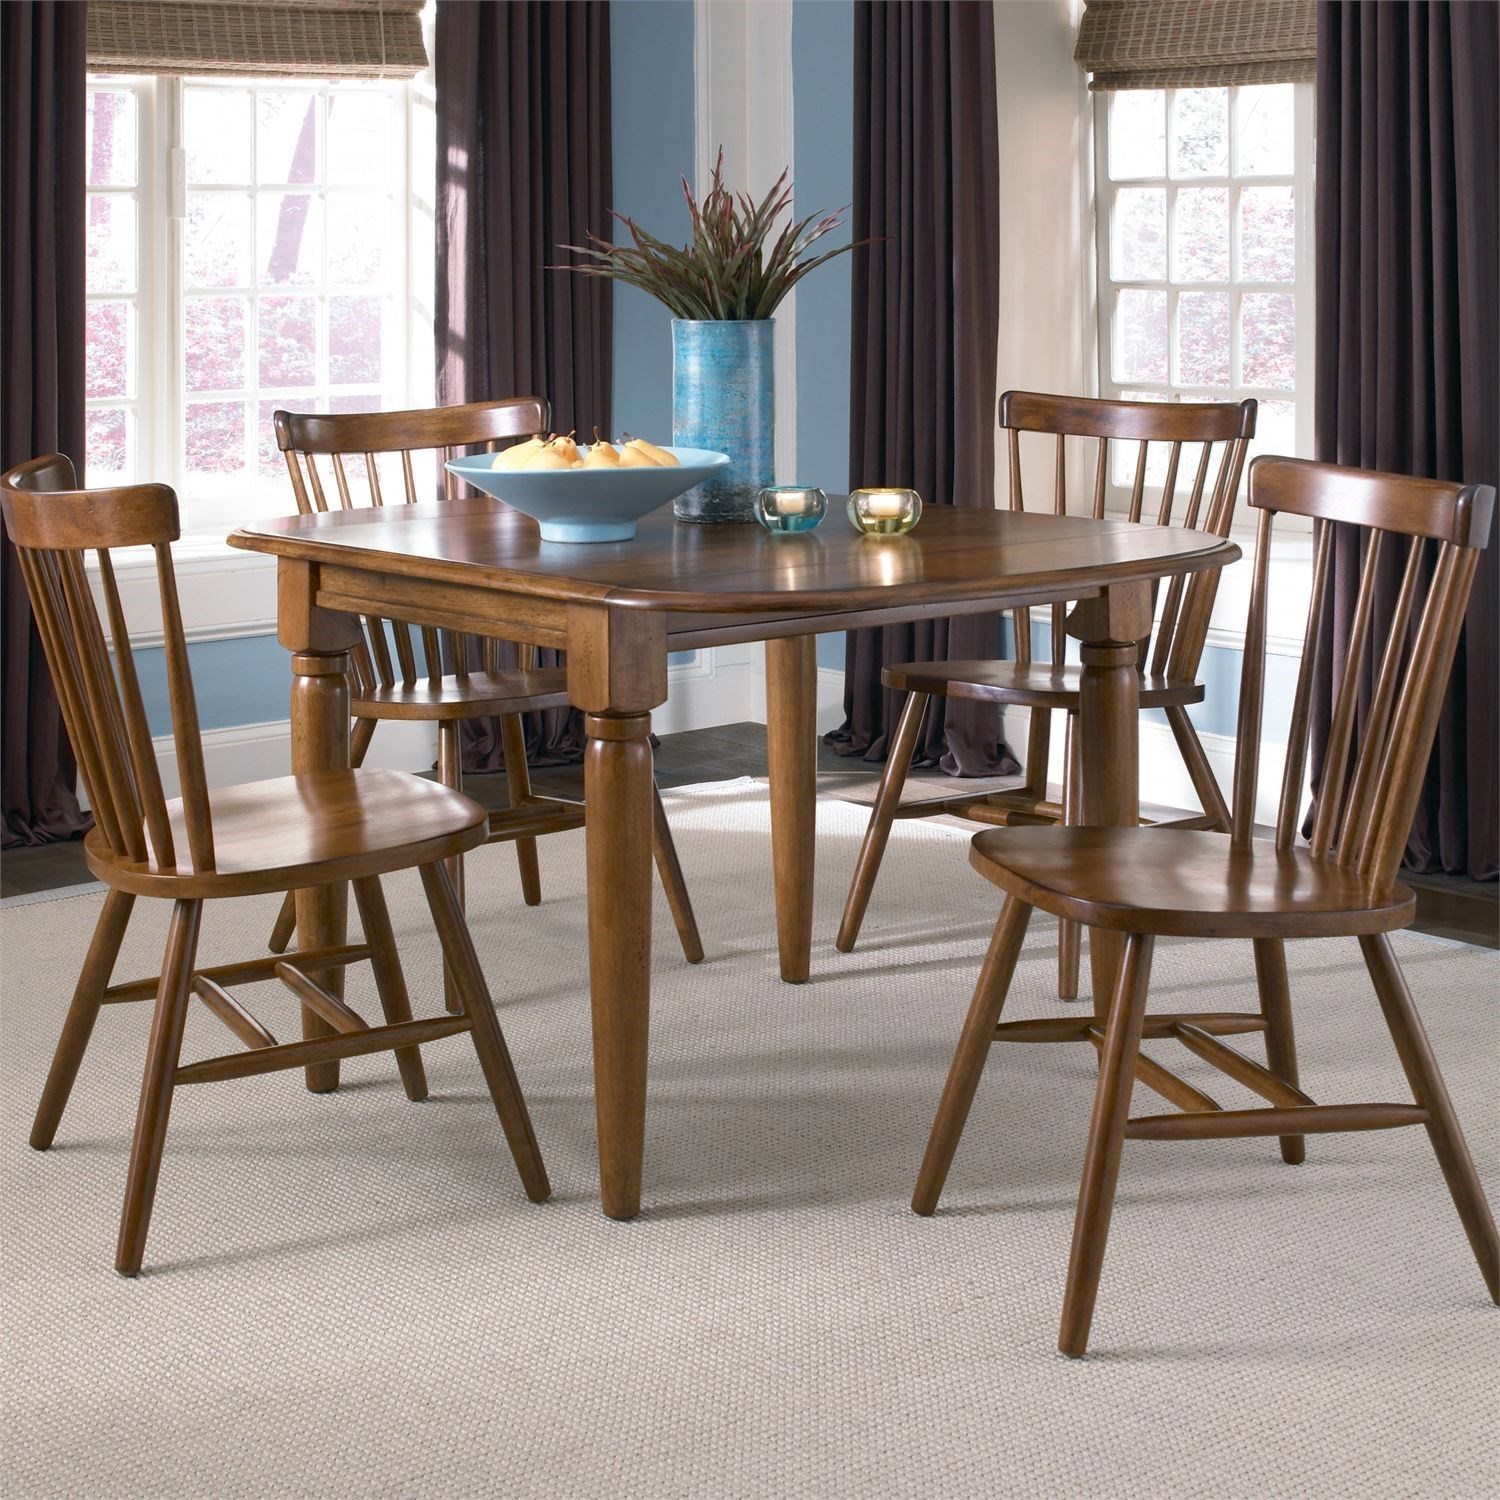 Creations II 5 Piece Dinette Table and Chair Set by Liberty Furniture at Dinette Depot